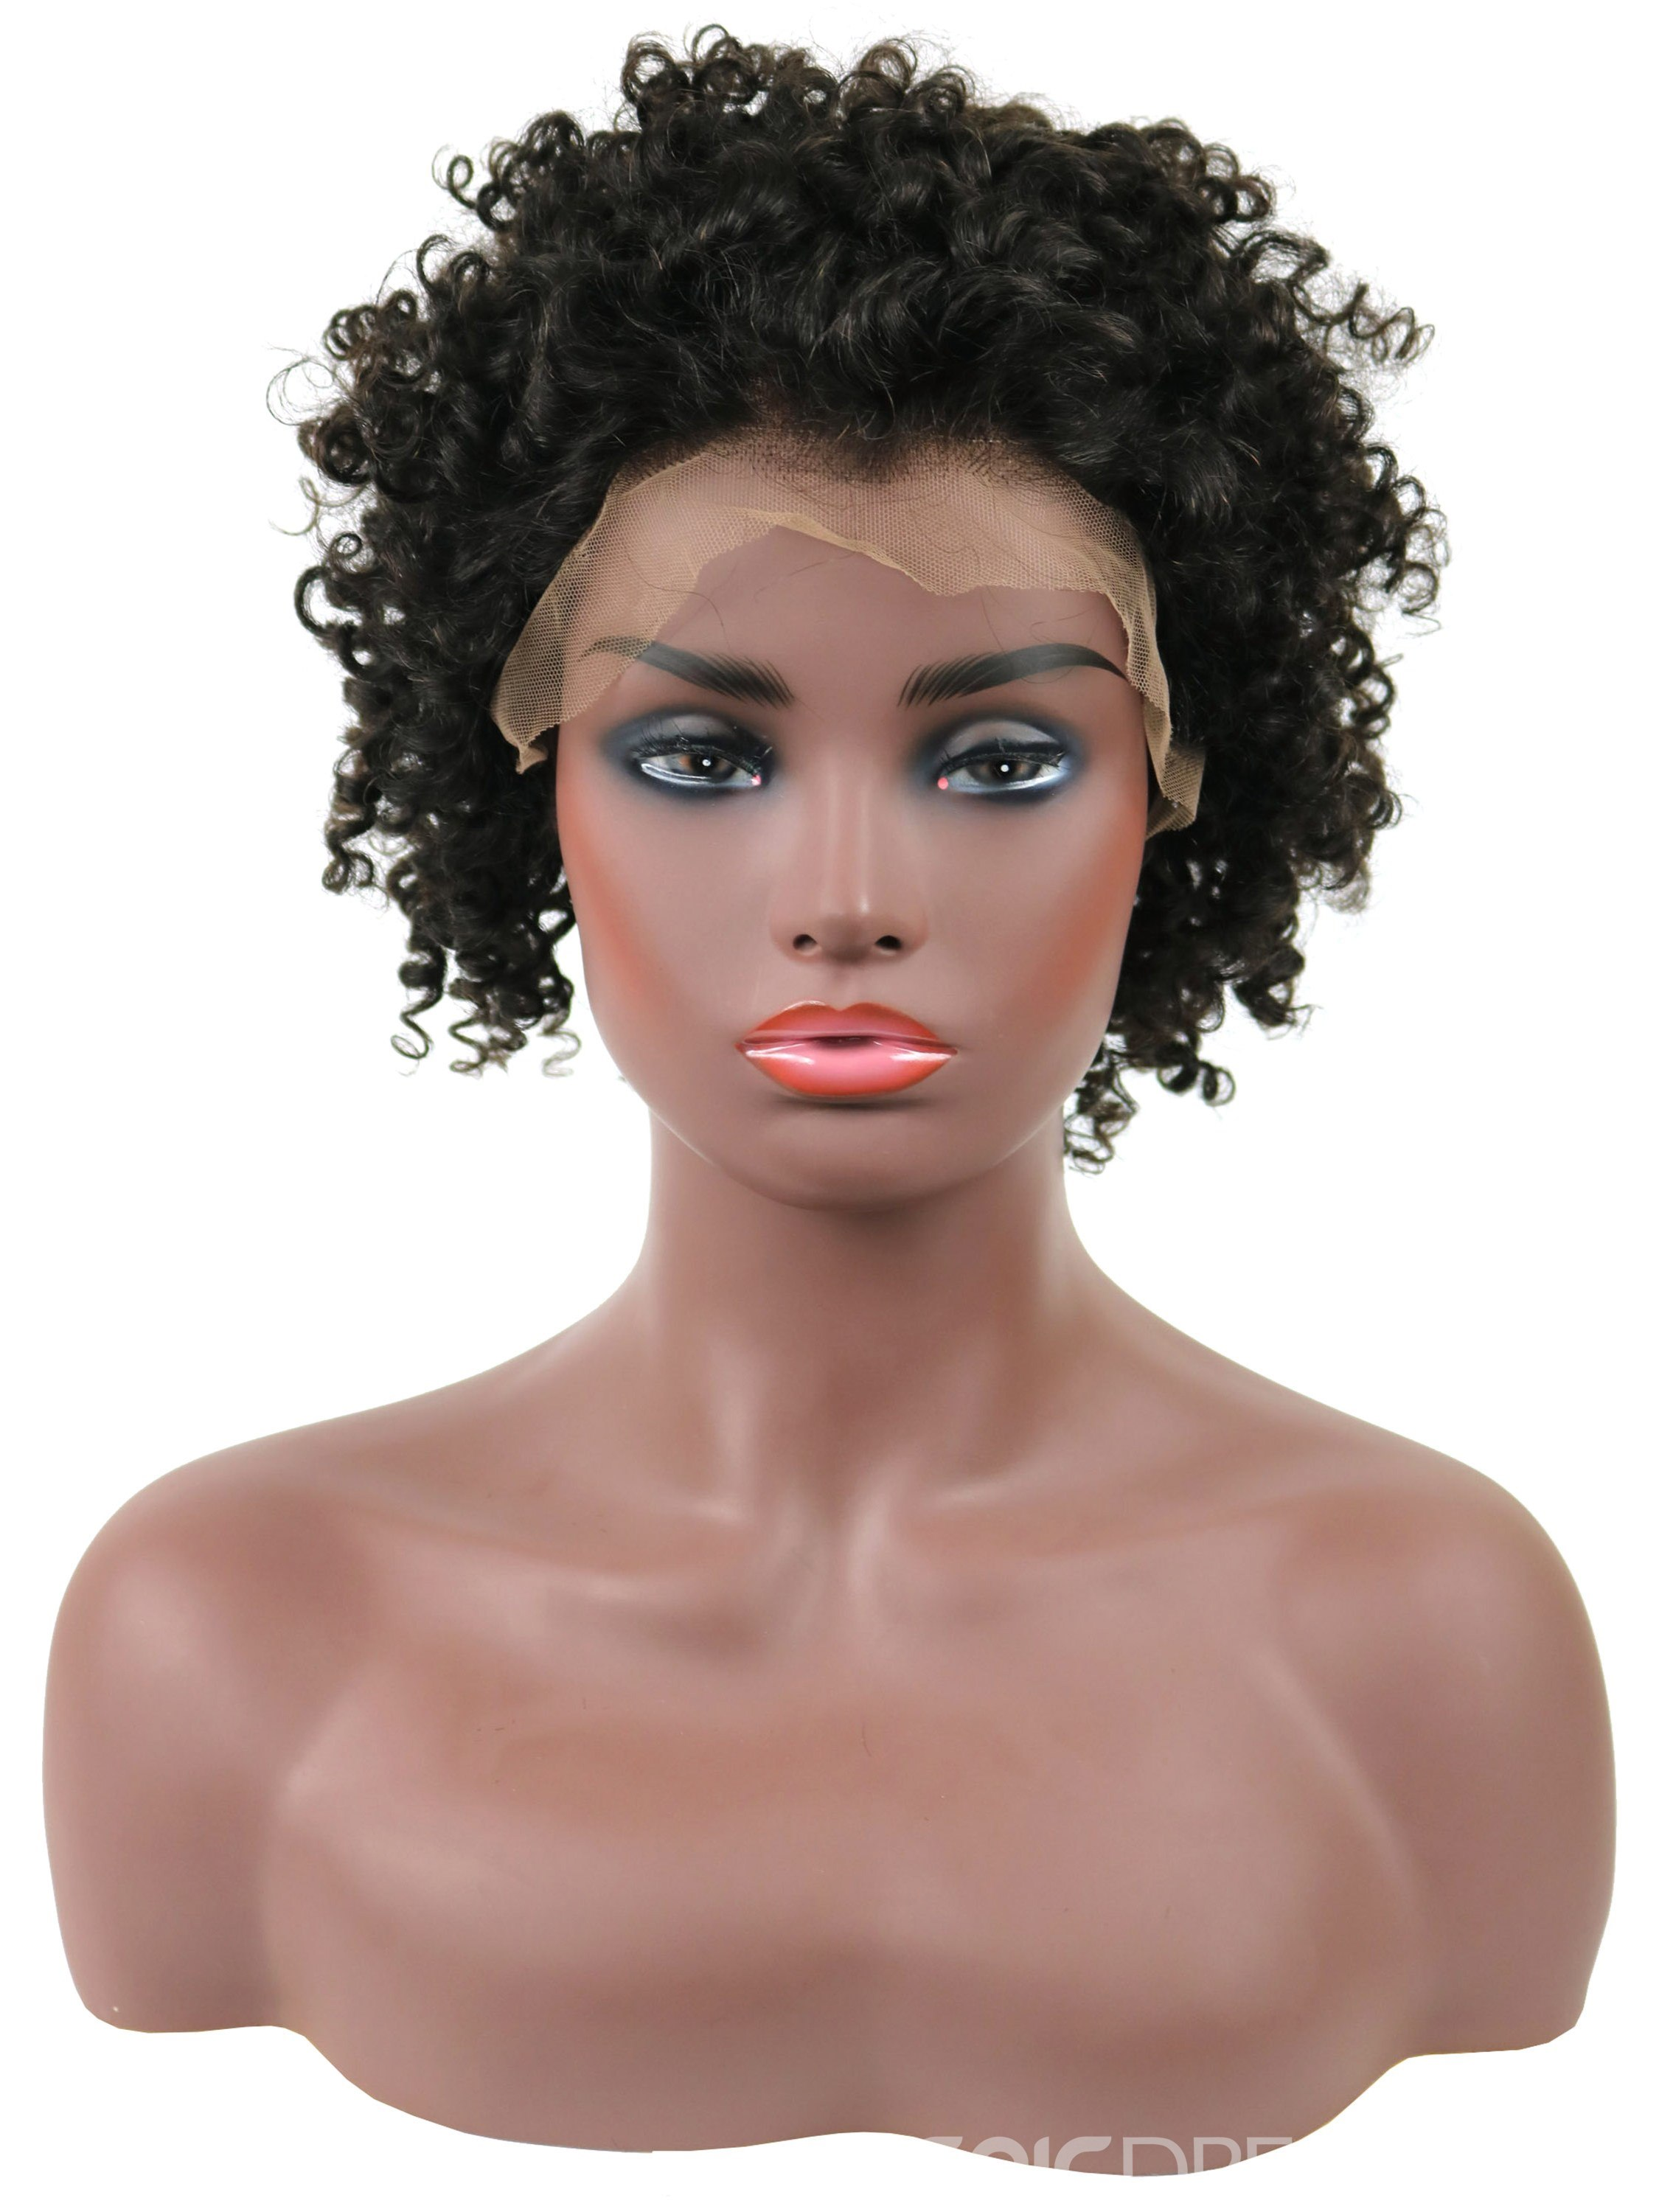 Ericdress Natural Black Kinky Curly Short African American Human Hair Lace Front Cap Wigs 10 Inches